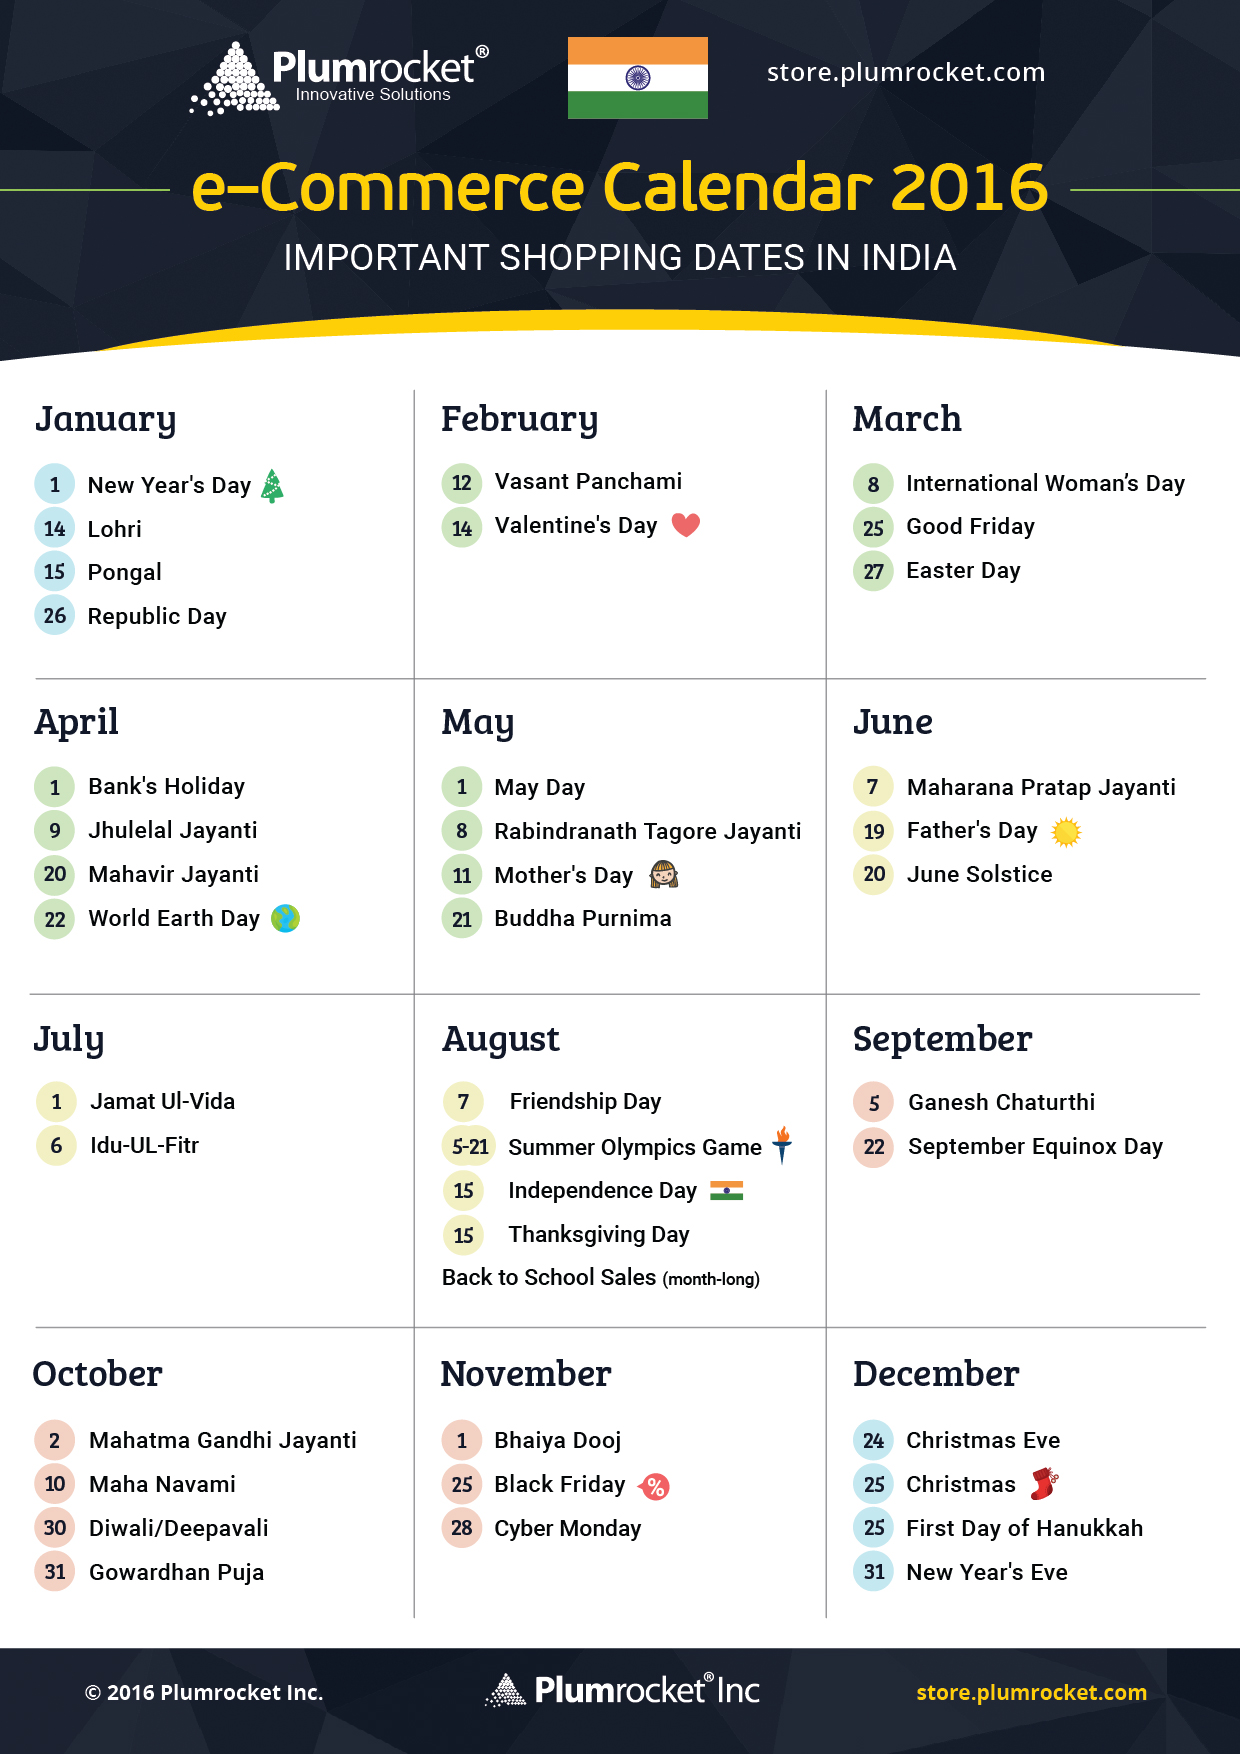 ecommerce-calendar-india-2016-by-Plumrocket